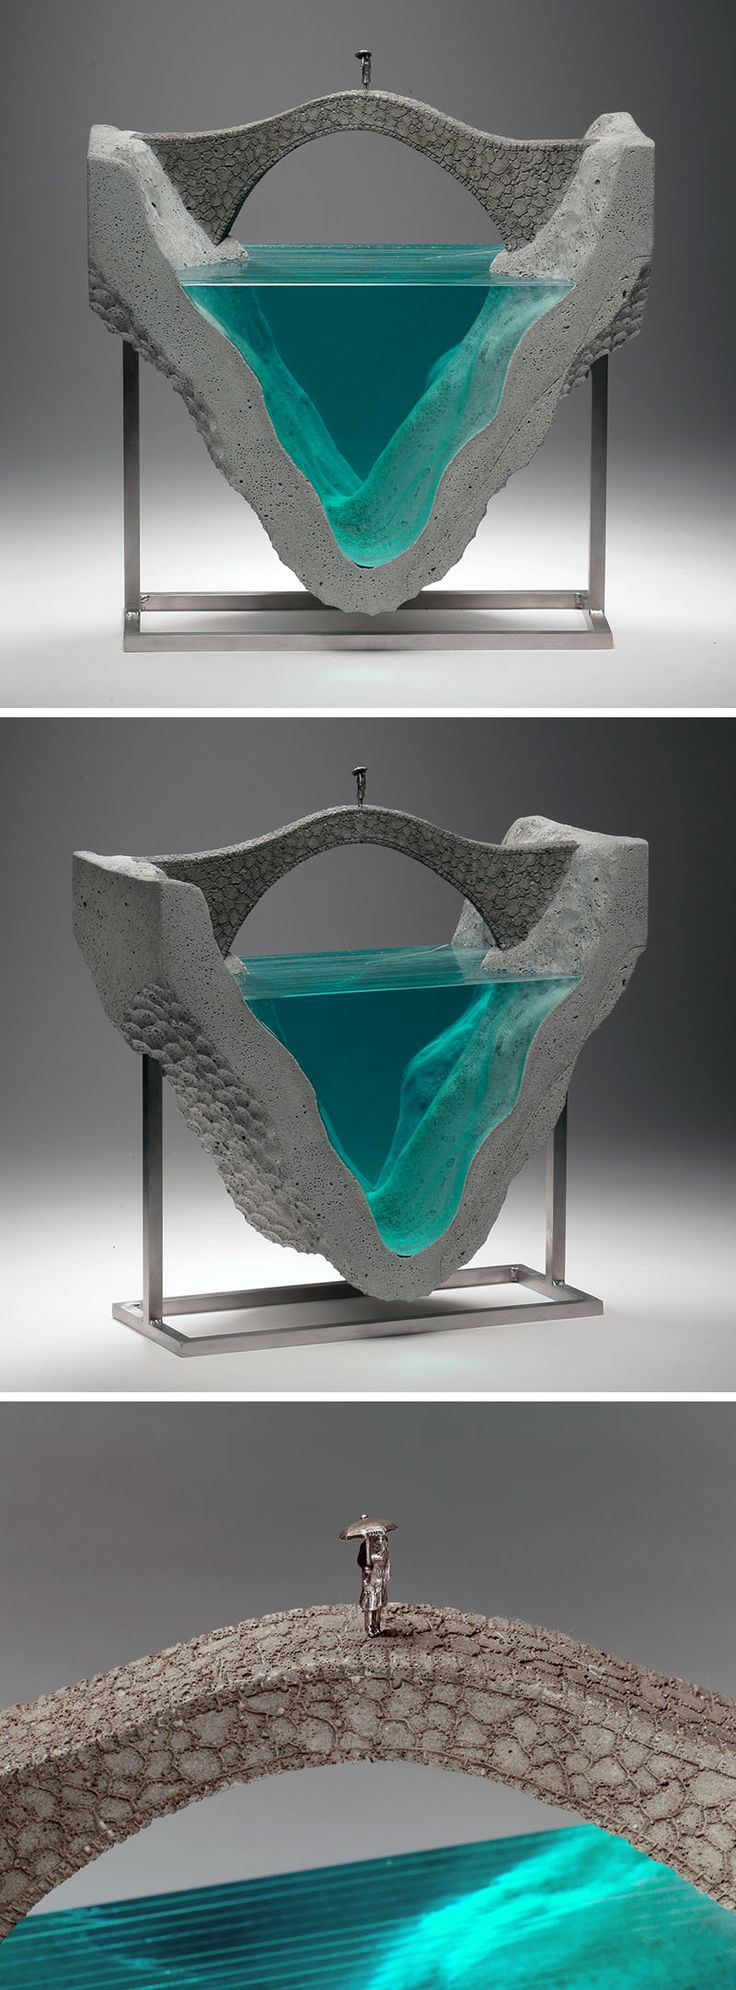 Inspired by landscapes of oceans and bodies of water, Ben Young creates concrete and glass sculptures and each of his pieces are hand drawn, hand cut and hand crafted. #Art #Sculpture #Concrete #Glass